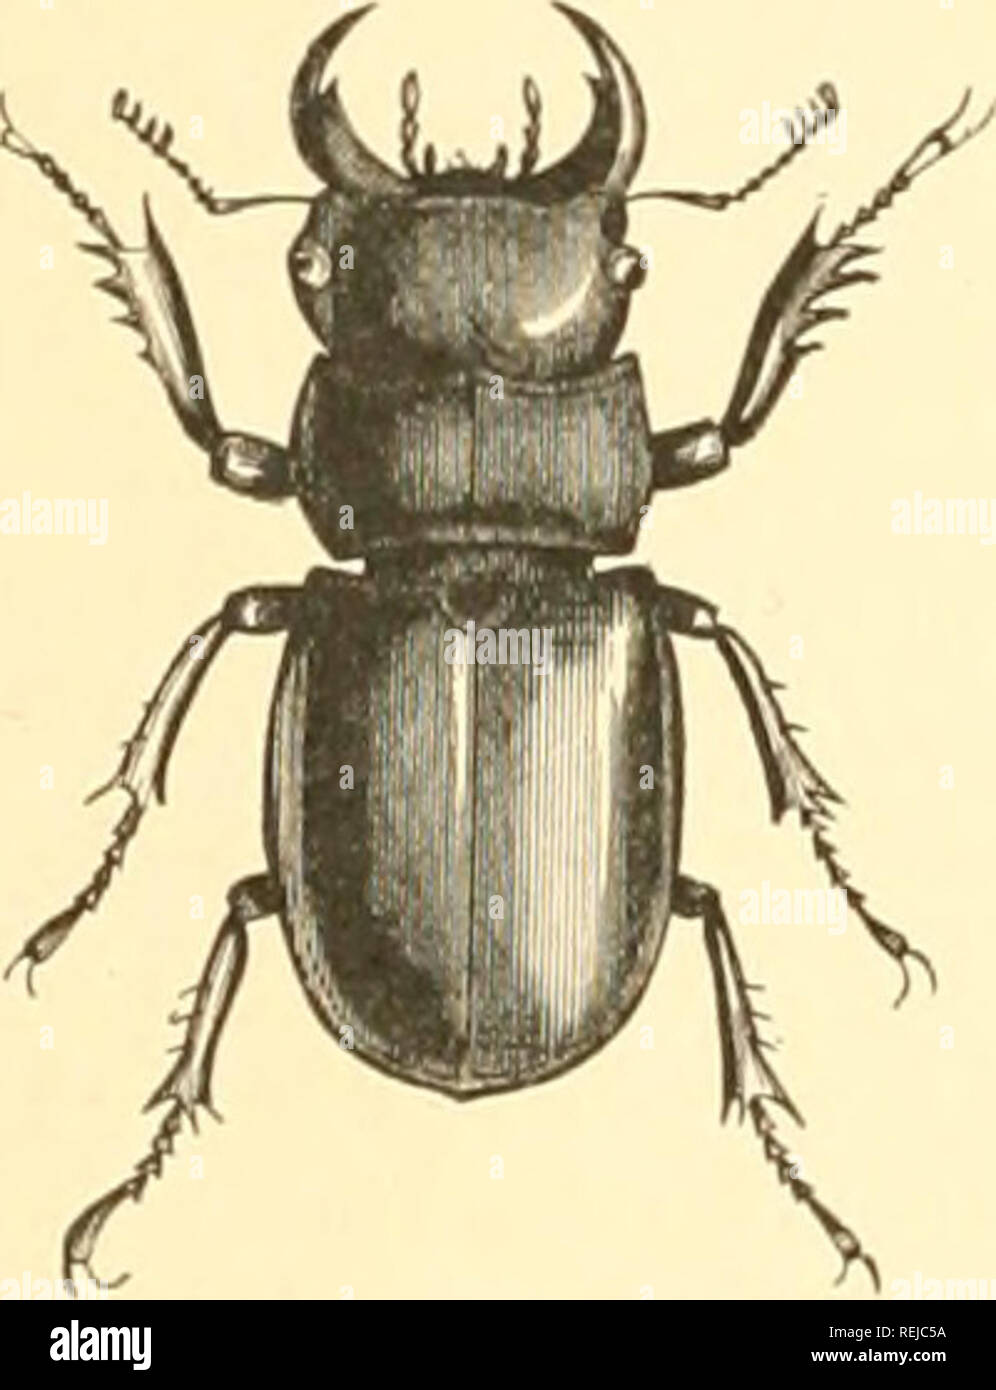 . Coleoptera. Beetles. 376 NATURAL HISTORY OF ARTHROPODS. is ahvnvs coveretl by the elytra, aiitl the beetles are usually somewhat elongate. Althouiih the si)ecies belonging to this family are generally nearly monocolorous — usually shatles of brown in temperate regions — in tropical species the colors are often o-reater in number. Some of the species have stridtilating organs. The larvie of the Lucanida* resemble closely those .of the SearabiTjidiv; they live in decaying wood, on the juices of which the imagos also feed. In Lucanus the mentum is entire, and covers the ligula and maxillse, the - Stock Image